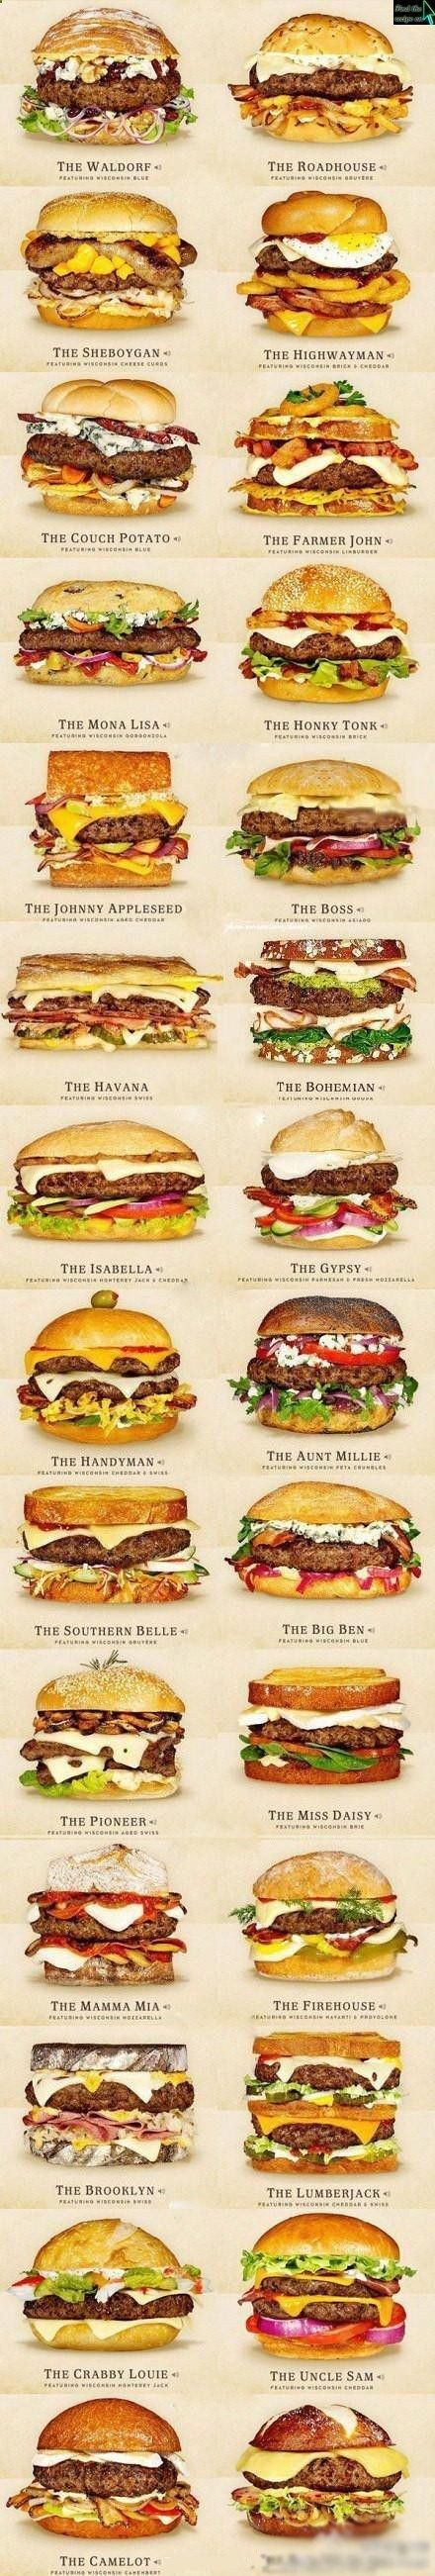 ITS GRILL SEASON! 30 Awesome Cheeseburger Ideas!